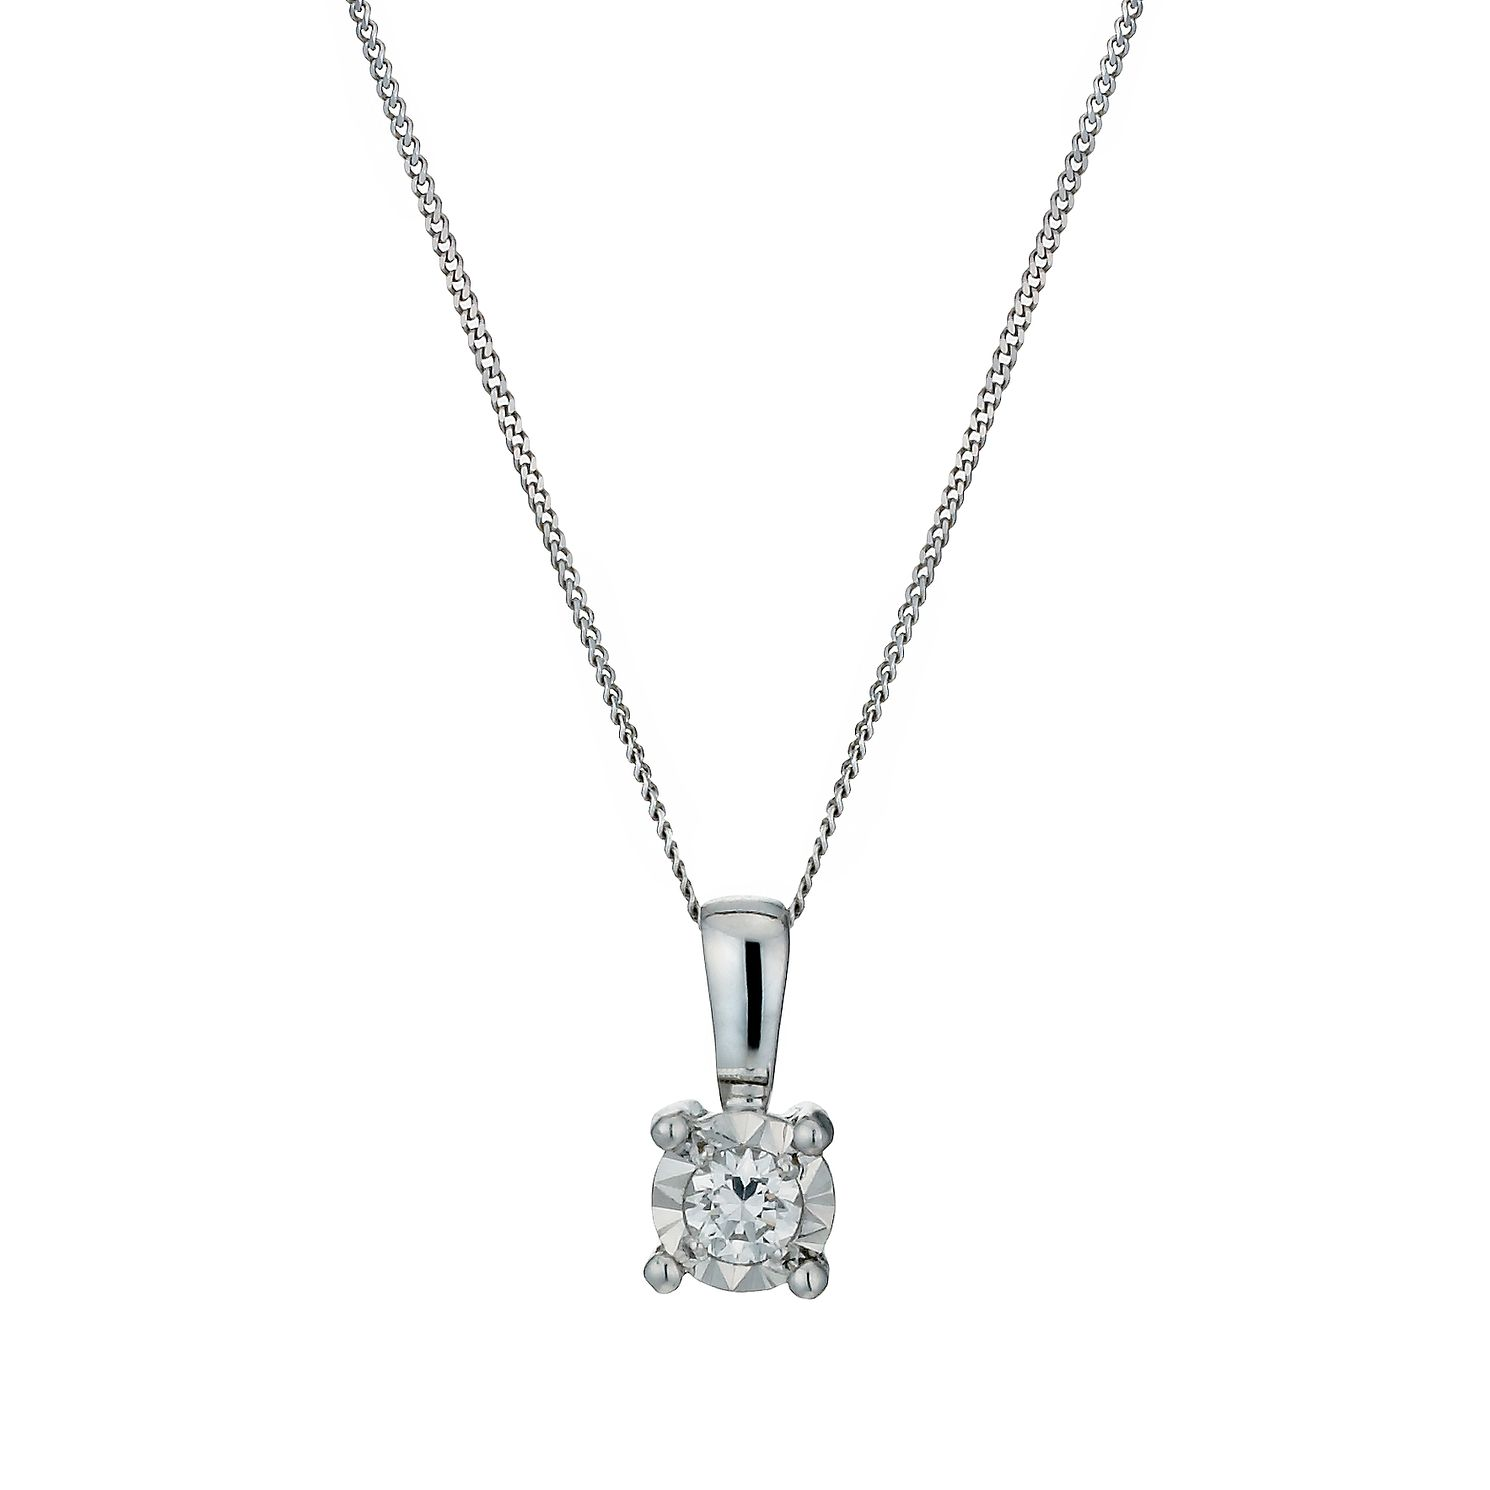 j solitaire at harry platinum org drop diamond jewelry z id necklaces winston necklace pendant